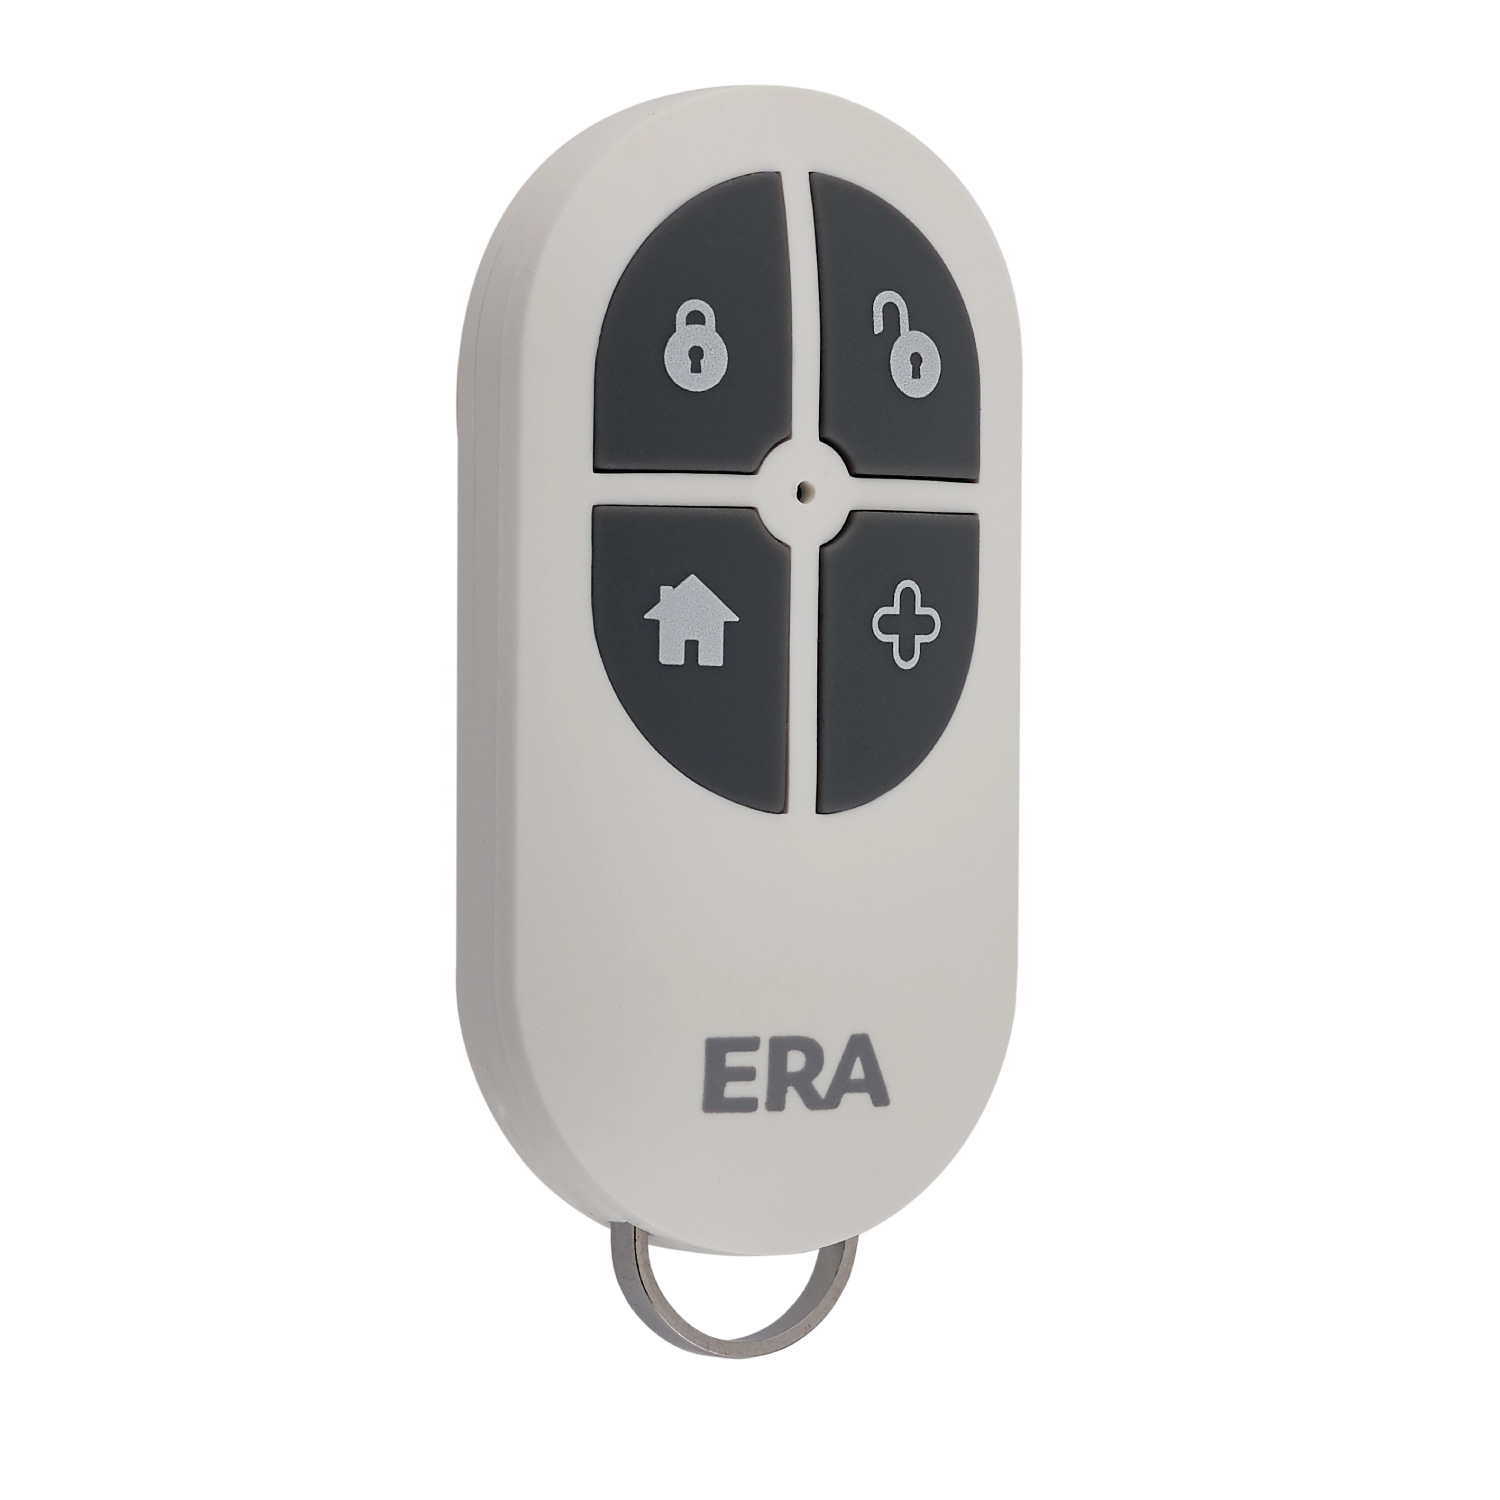 ERA Protect Wireless Remote Control